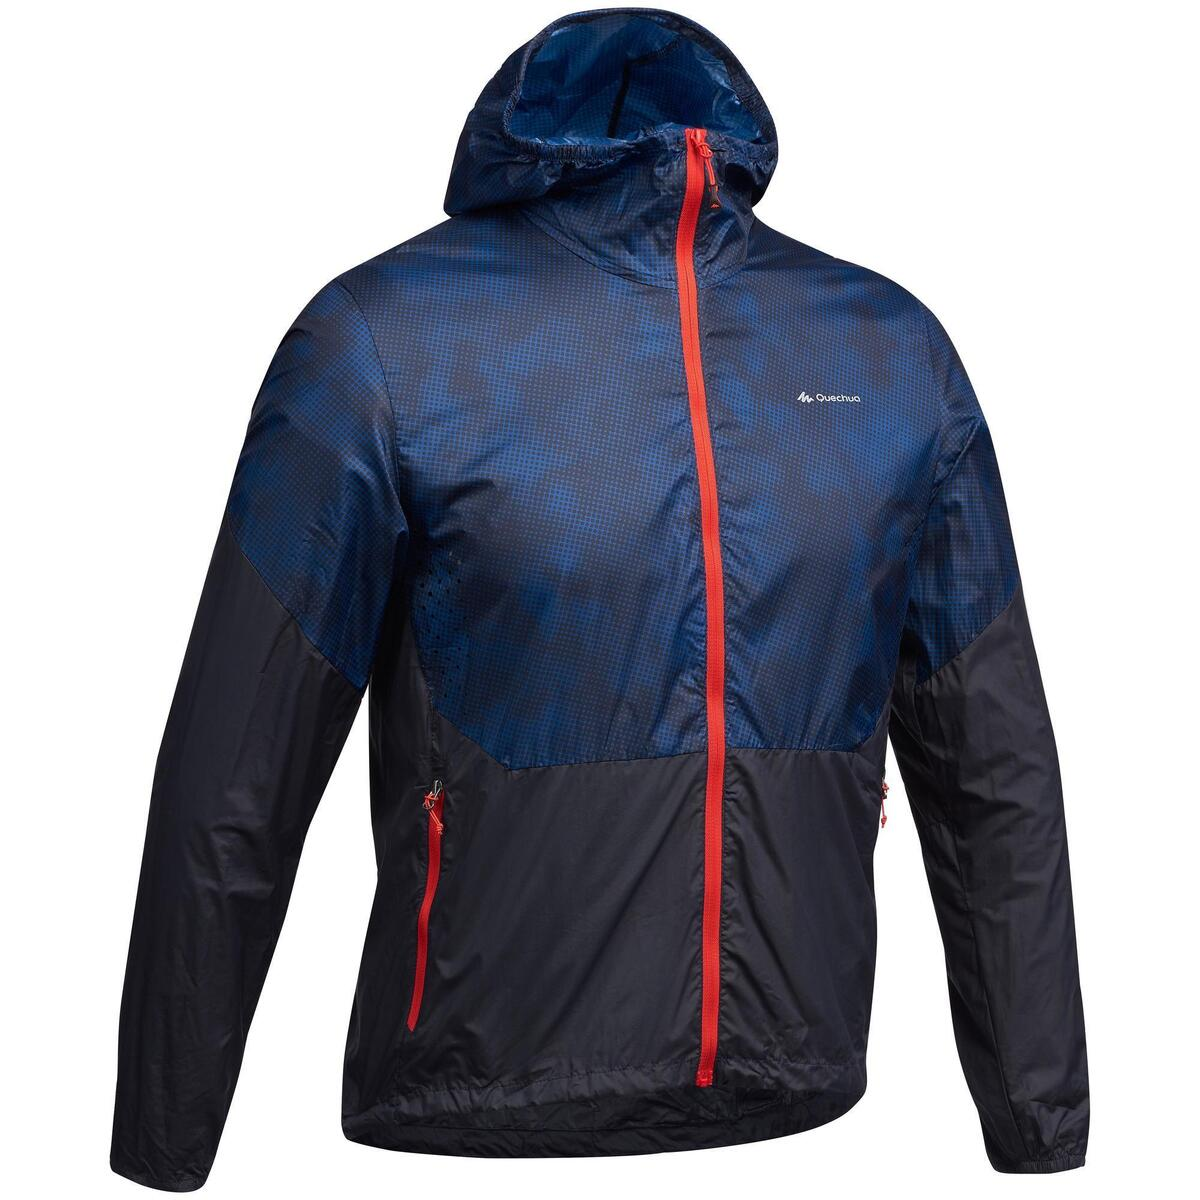 Bild 1 von Windjacke Speed Hiking FH500 Helium Herren blau/rot